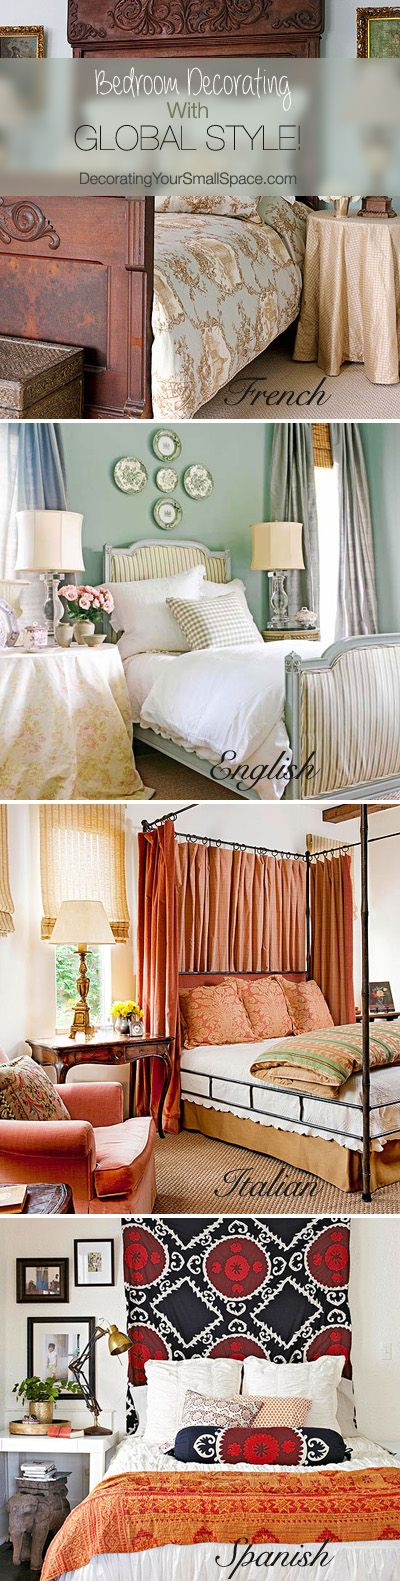 Brighten Up Your Bedroom with a Global Twist! • Tips & Ideas!